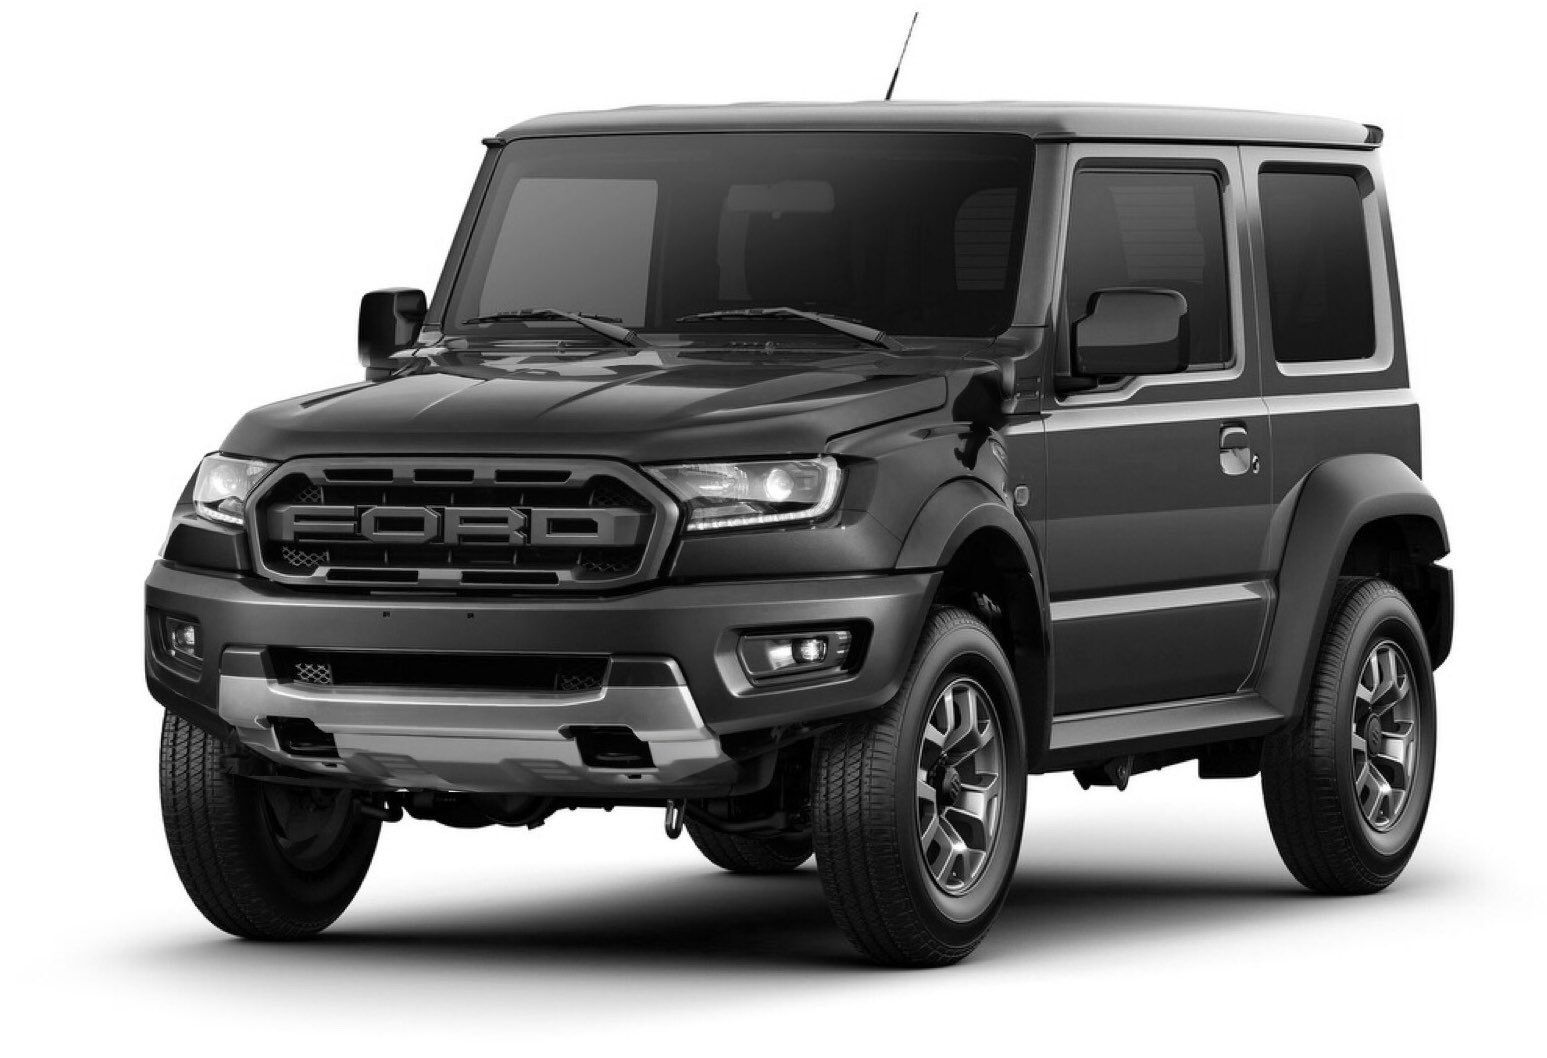 Pin by Keyan Warnick on Ford power Ford bronco, Car